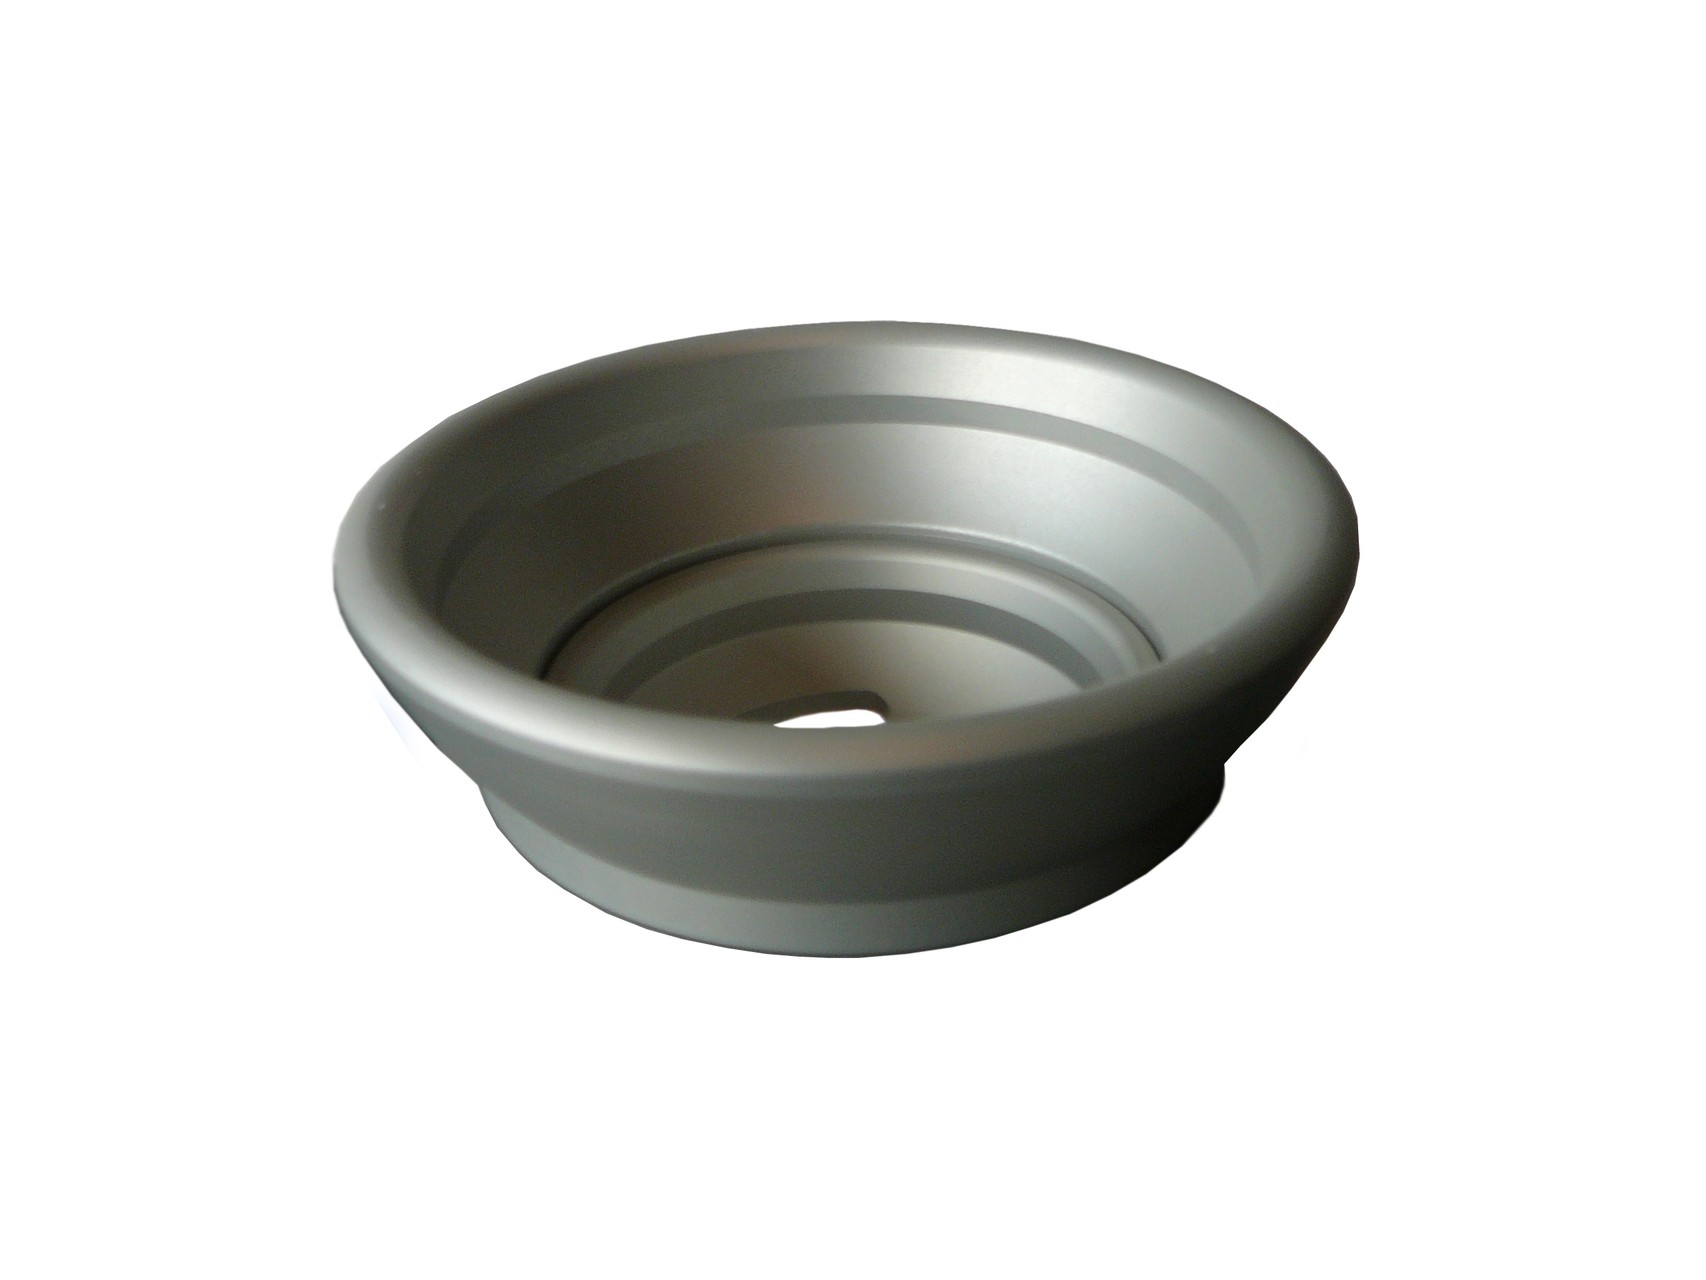 100>150mm (PS541) Adapter changes the 100mm bowl into a 150mm bowl - includes special tie down